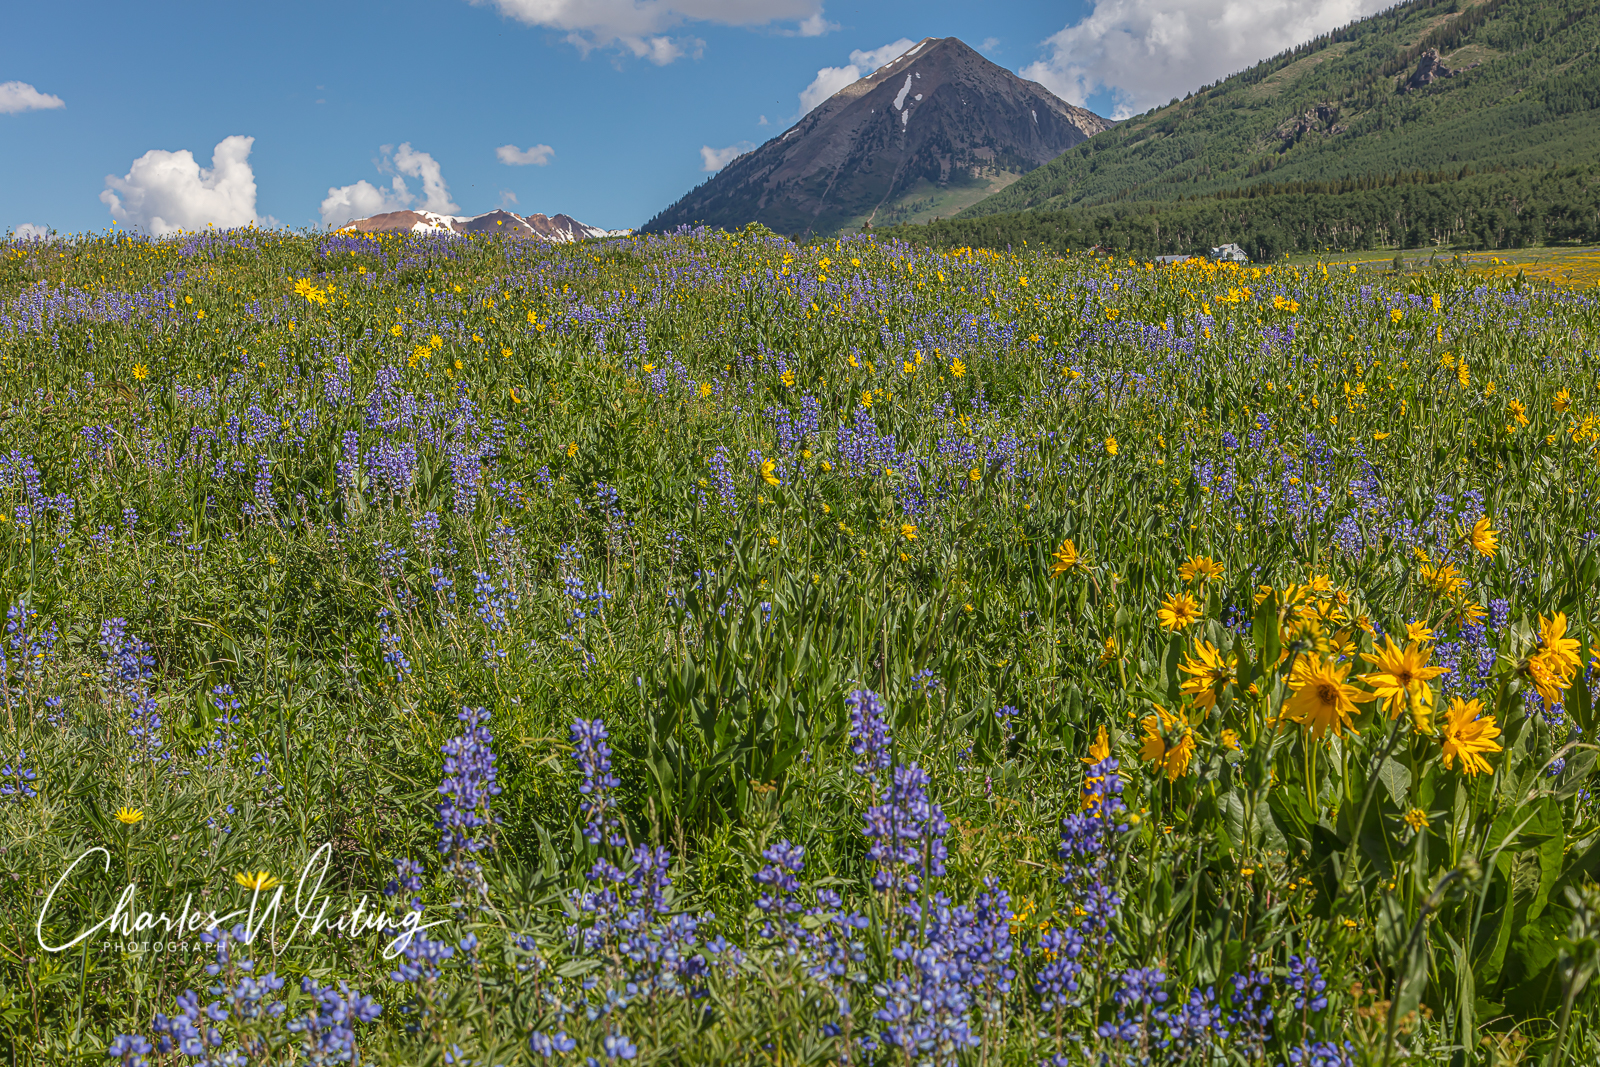 Purple Lupine, Aspen Sunflowers, Crested Butte, Colorado, Mount Crested Butte, photo